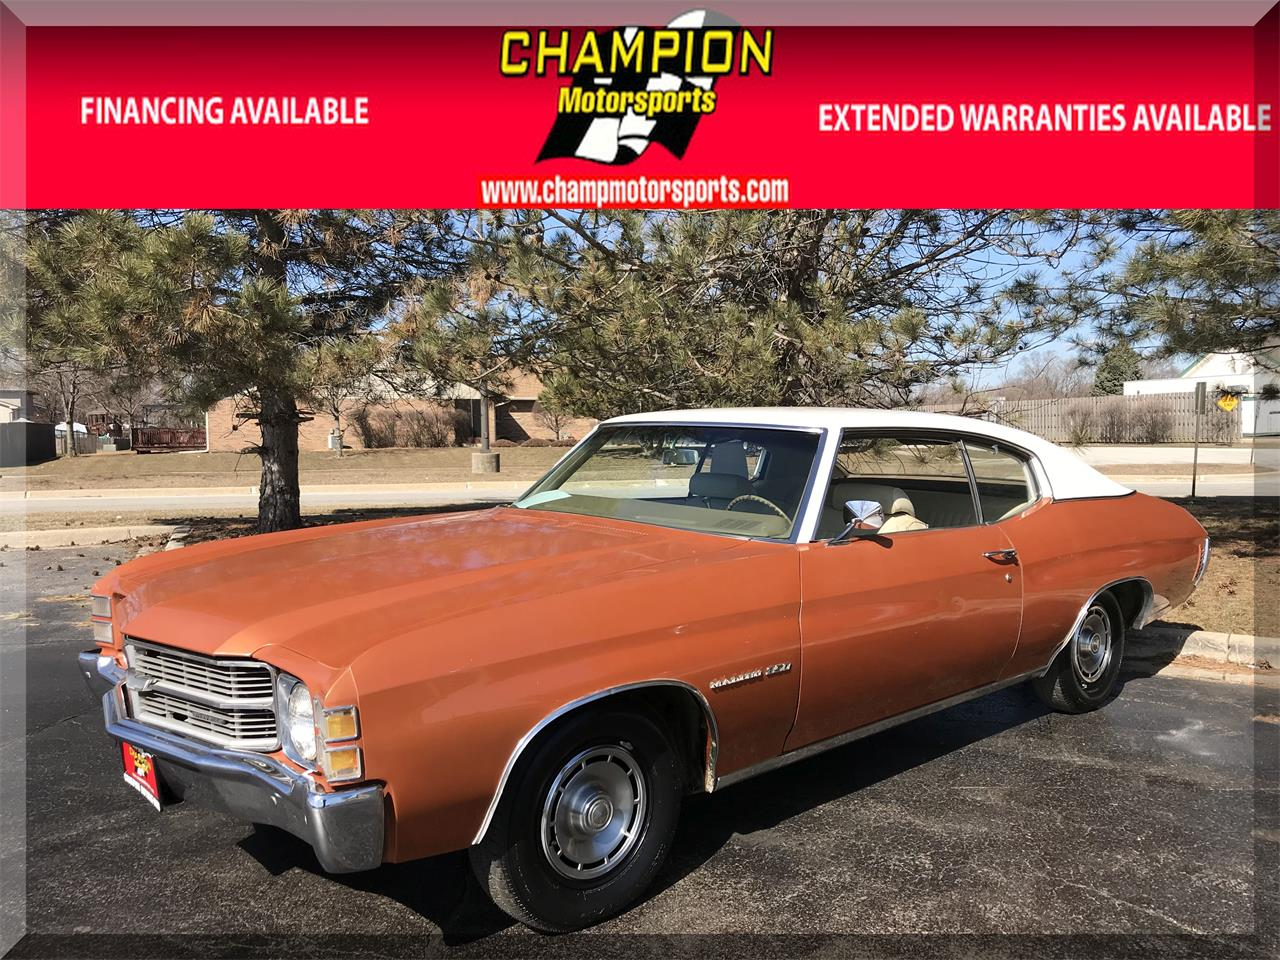 Large Picture of Classic 1971 Chevrolet Chevelle Malibu - $15,995.00 Offered by Champion Motorsports - N55J